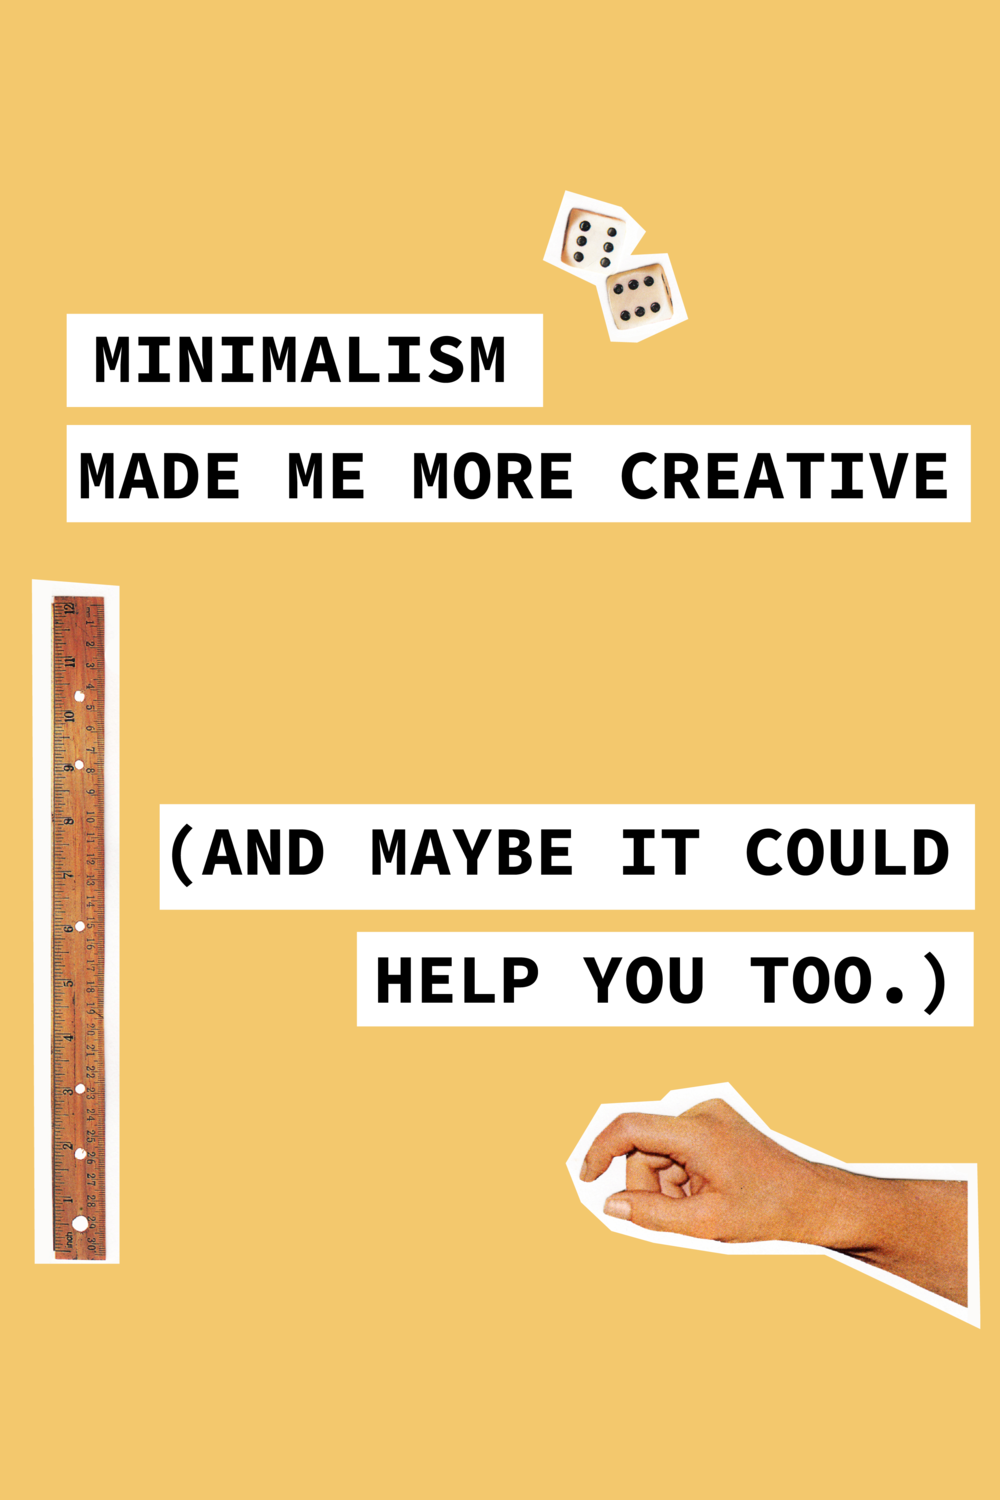 Minimalism Made Me More Creative. (And Maybe It Could Help You Too).